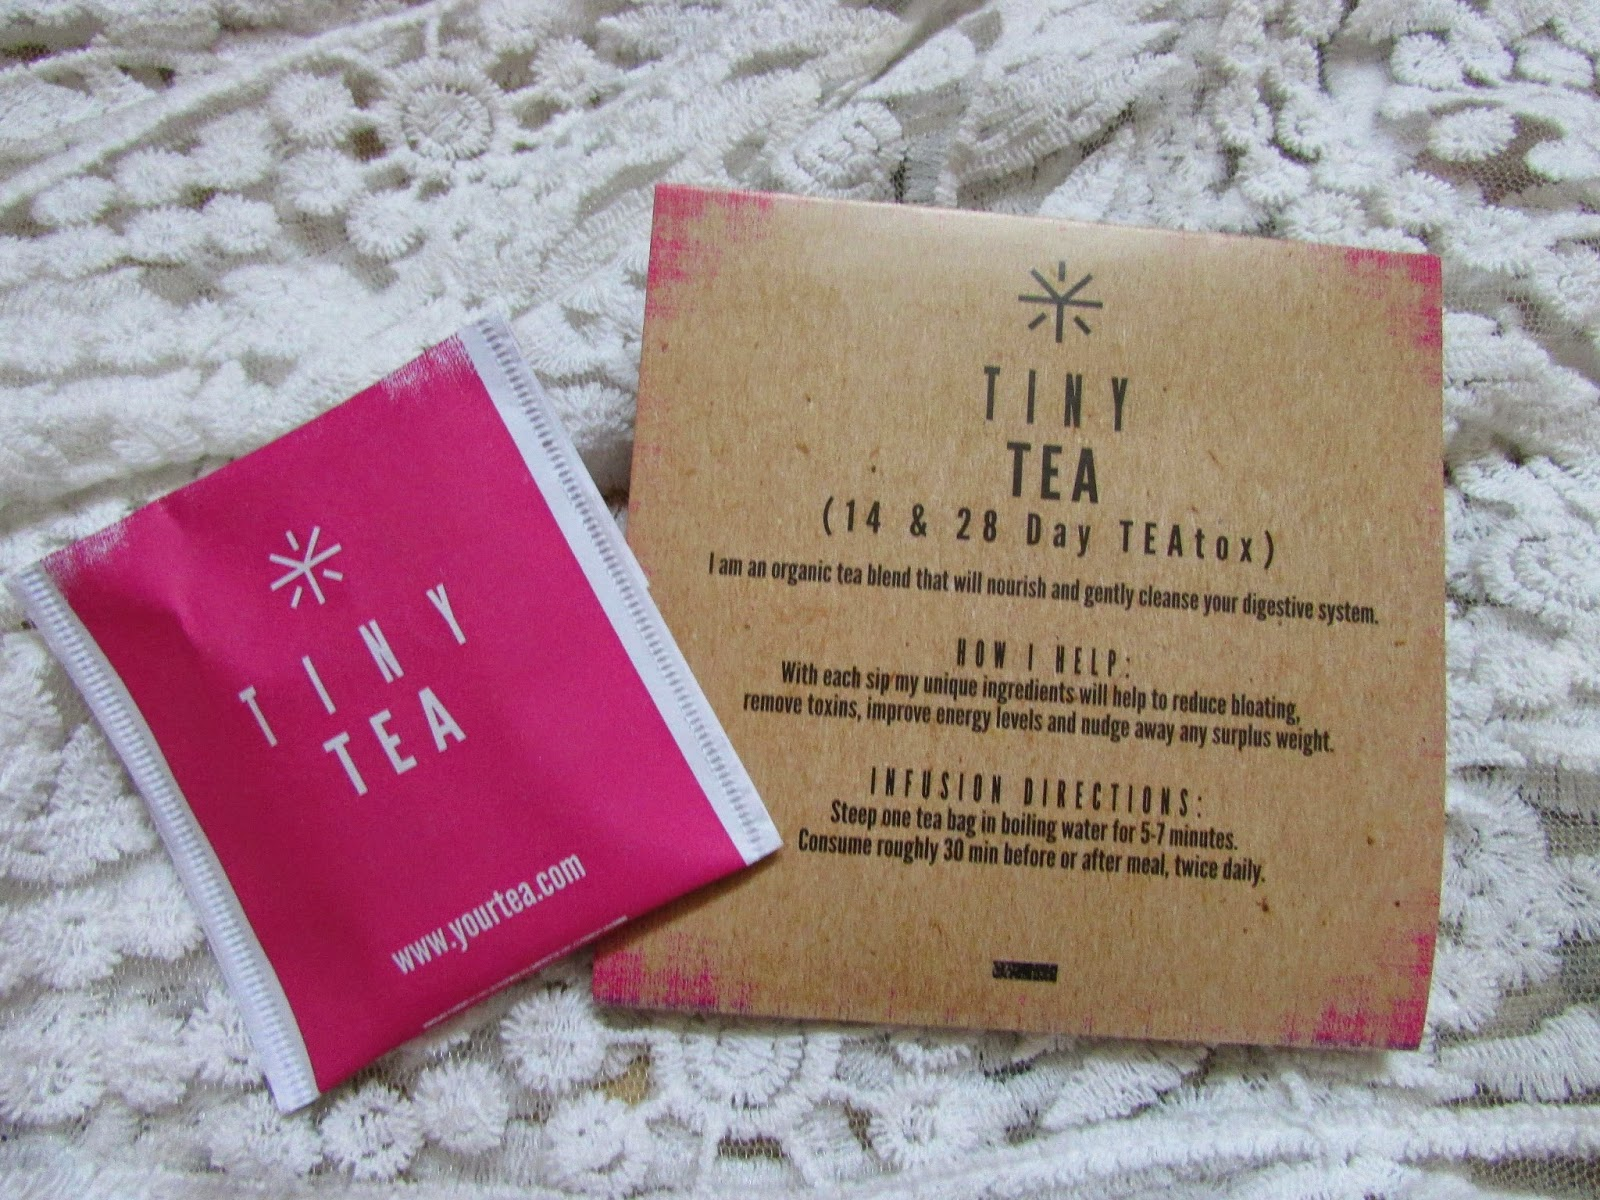 detox, bloating, weight loss, stress relief, tiny tea, your tea, tiny tea review, weight loss tea, detox tea, slimming tea online, cheap weight loss tea, toxins, how to loose weight quickly, how to reduce bloating, Fertility Tea, Man Tea ,Anti-C Tea, Skin Magic Tea